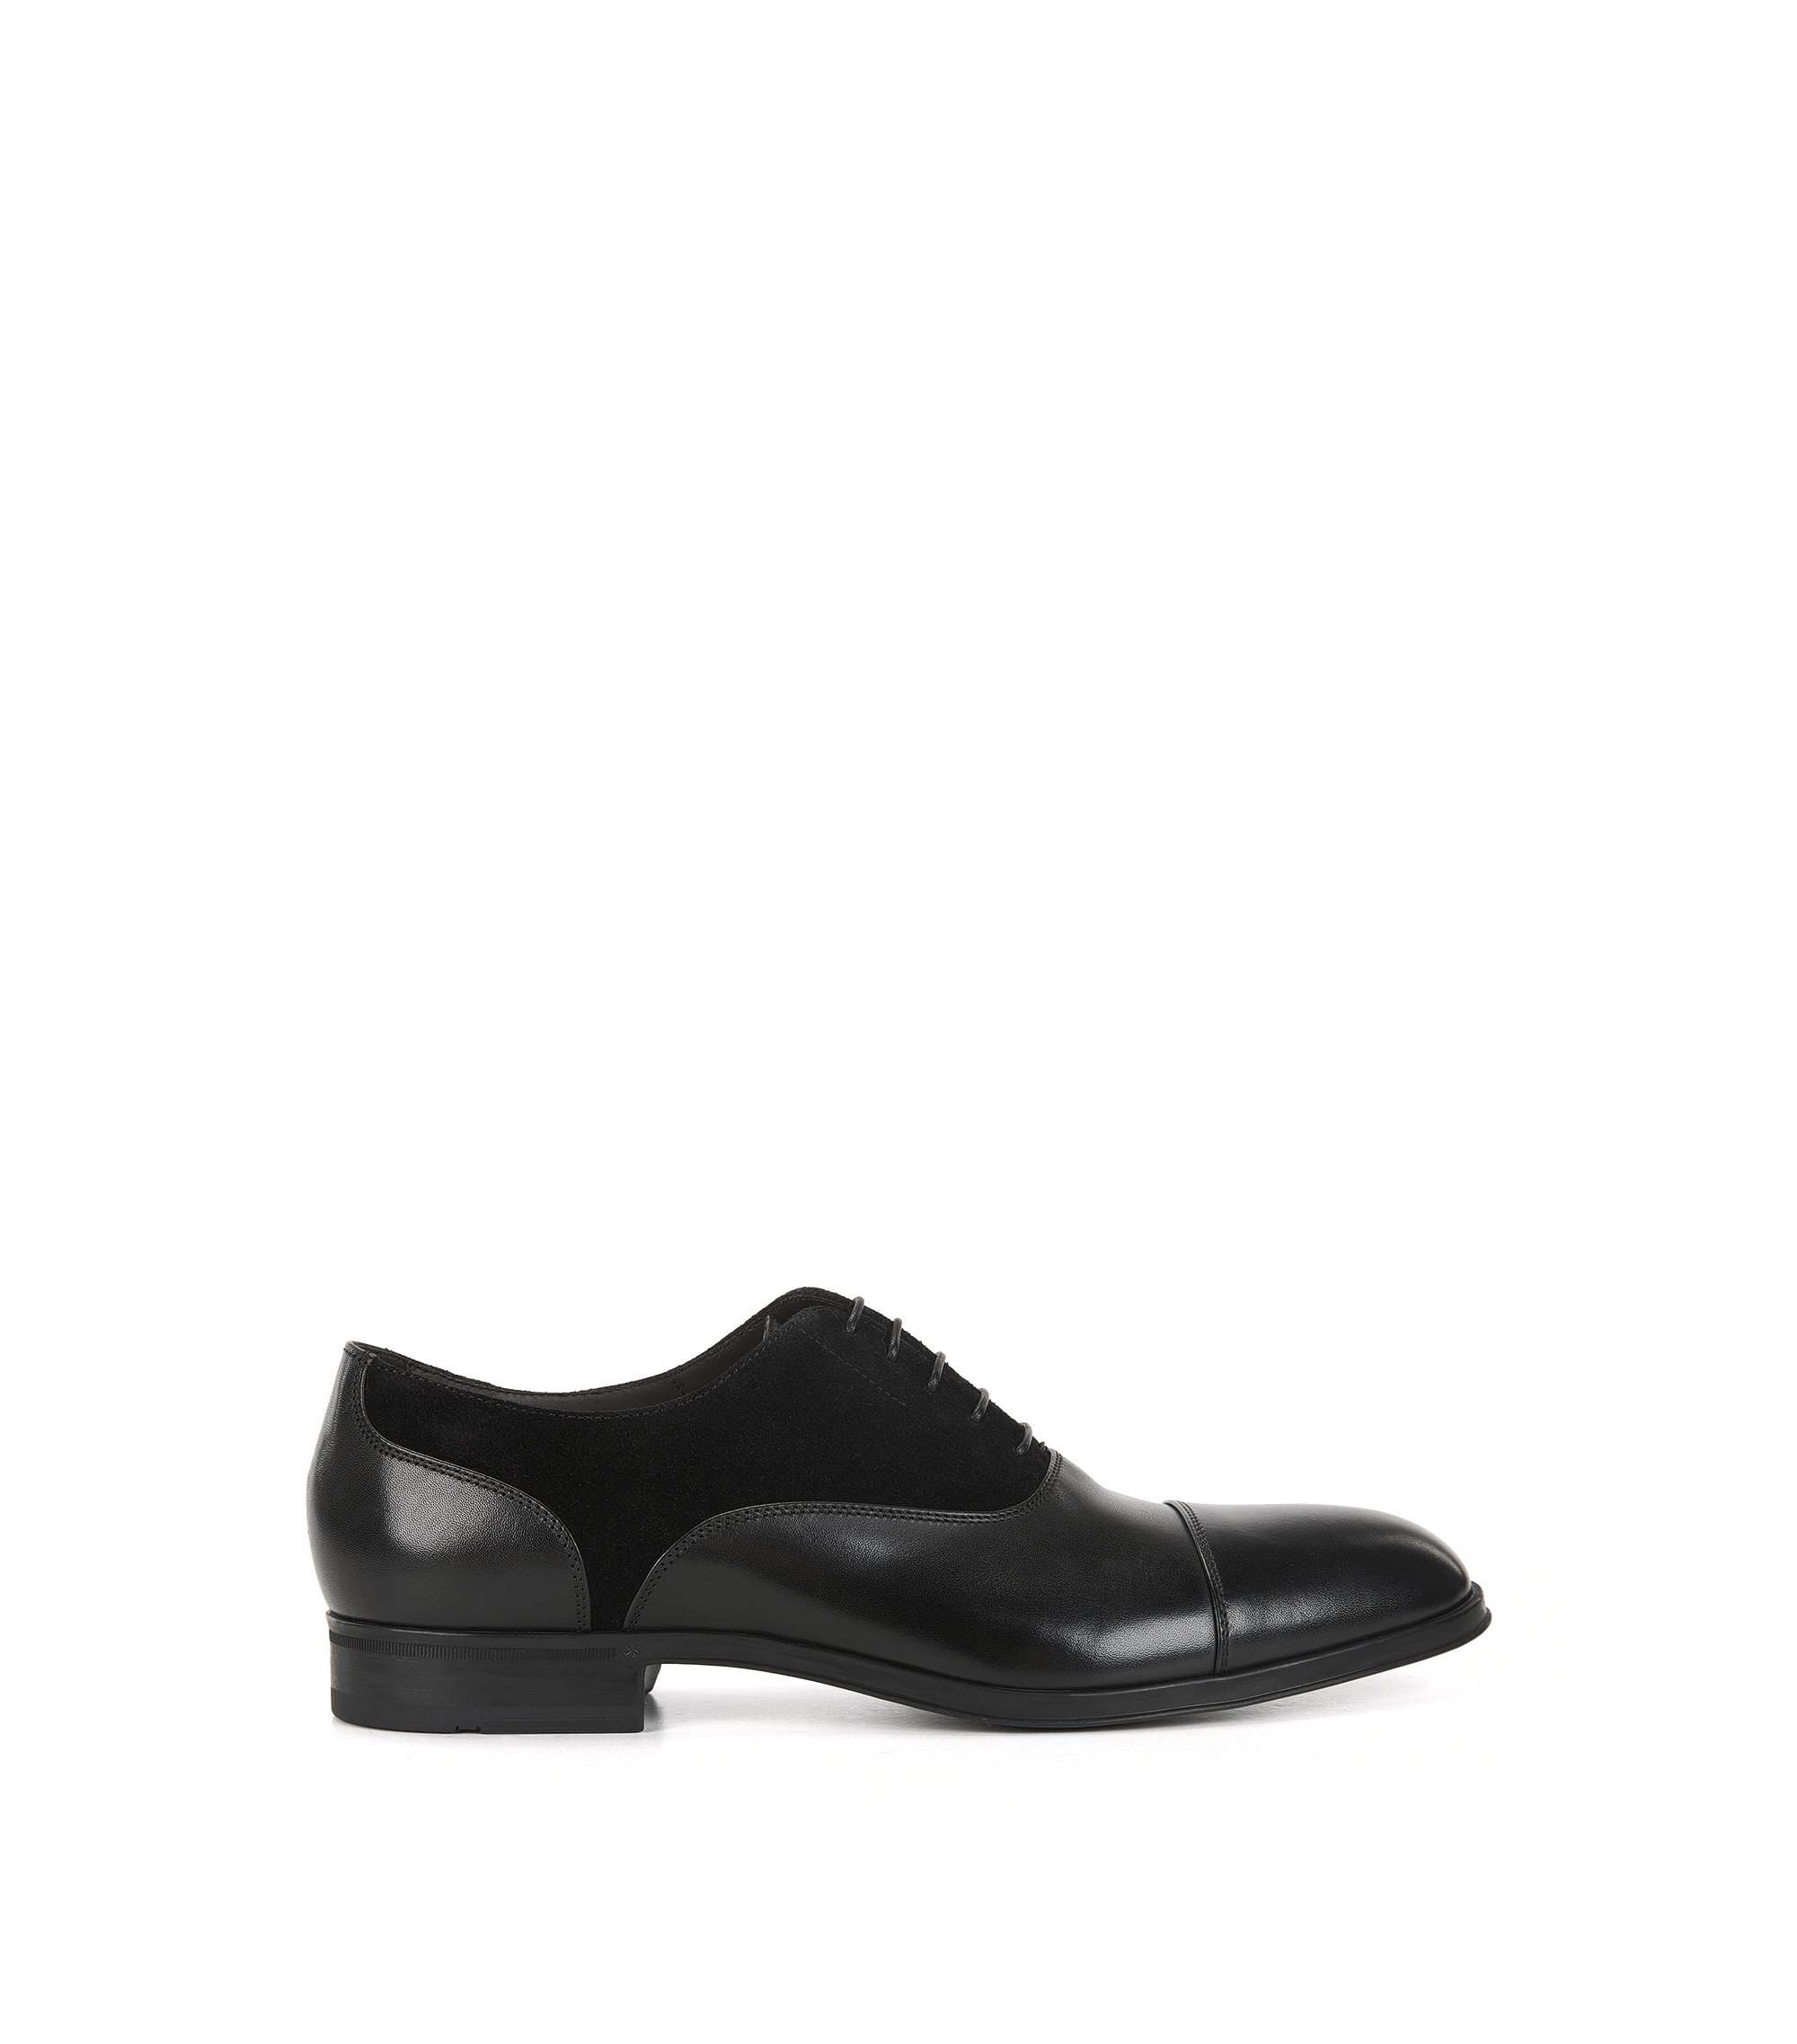 Suede & Leather Saddle Dress Shoe | Eton Oxfr Sdct, Black